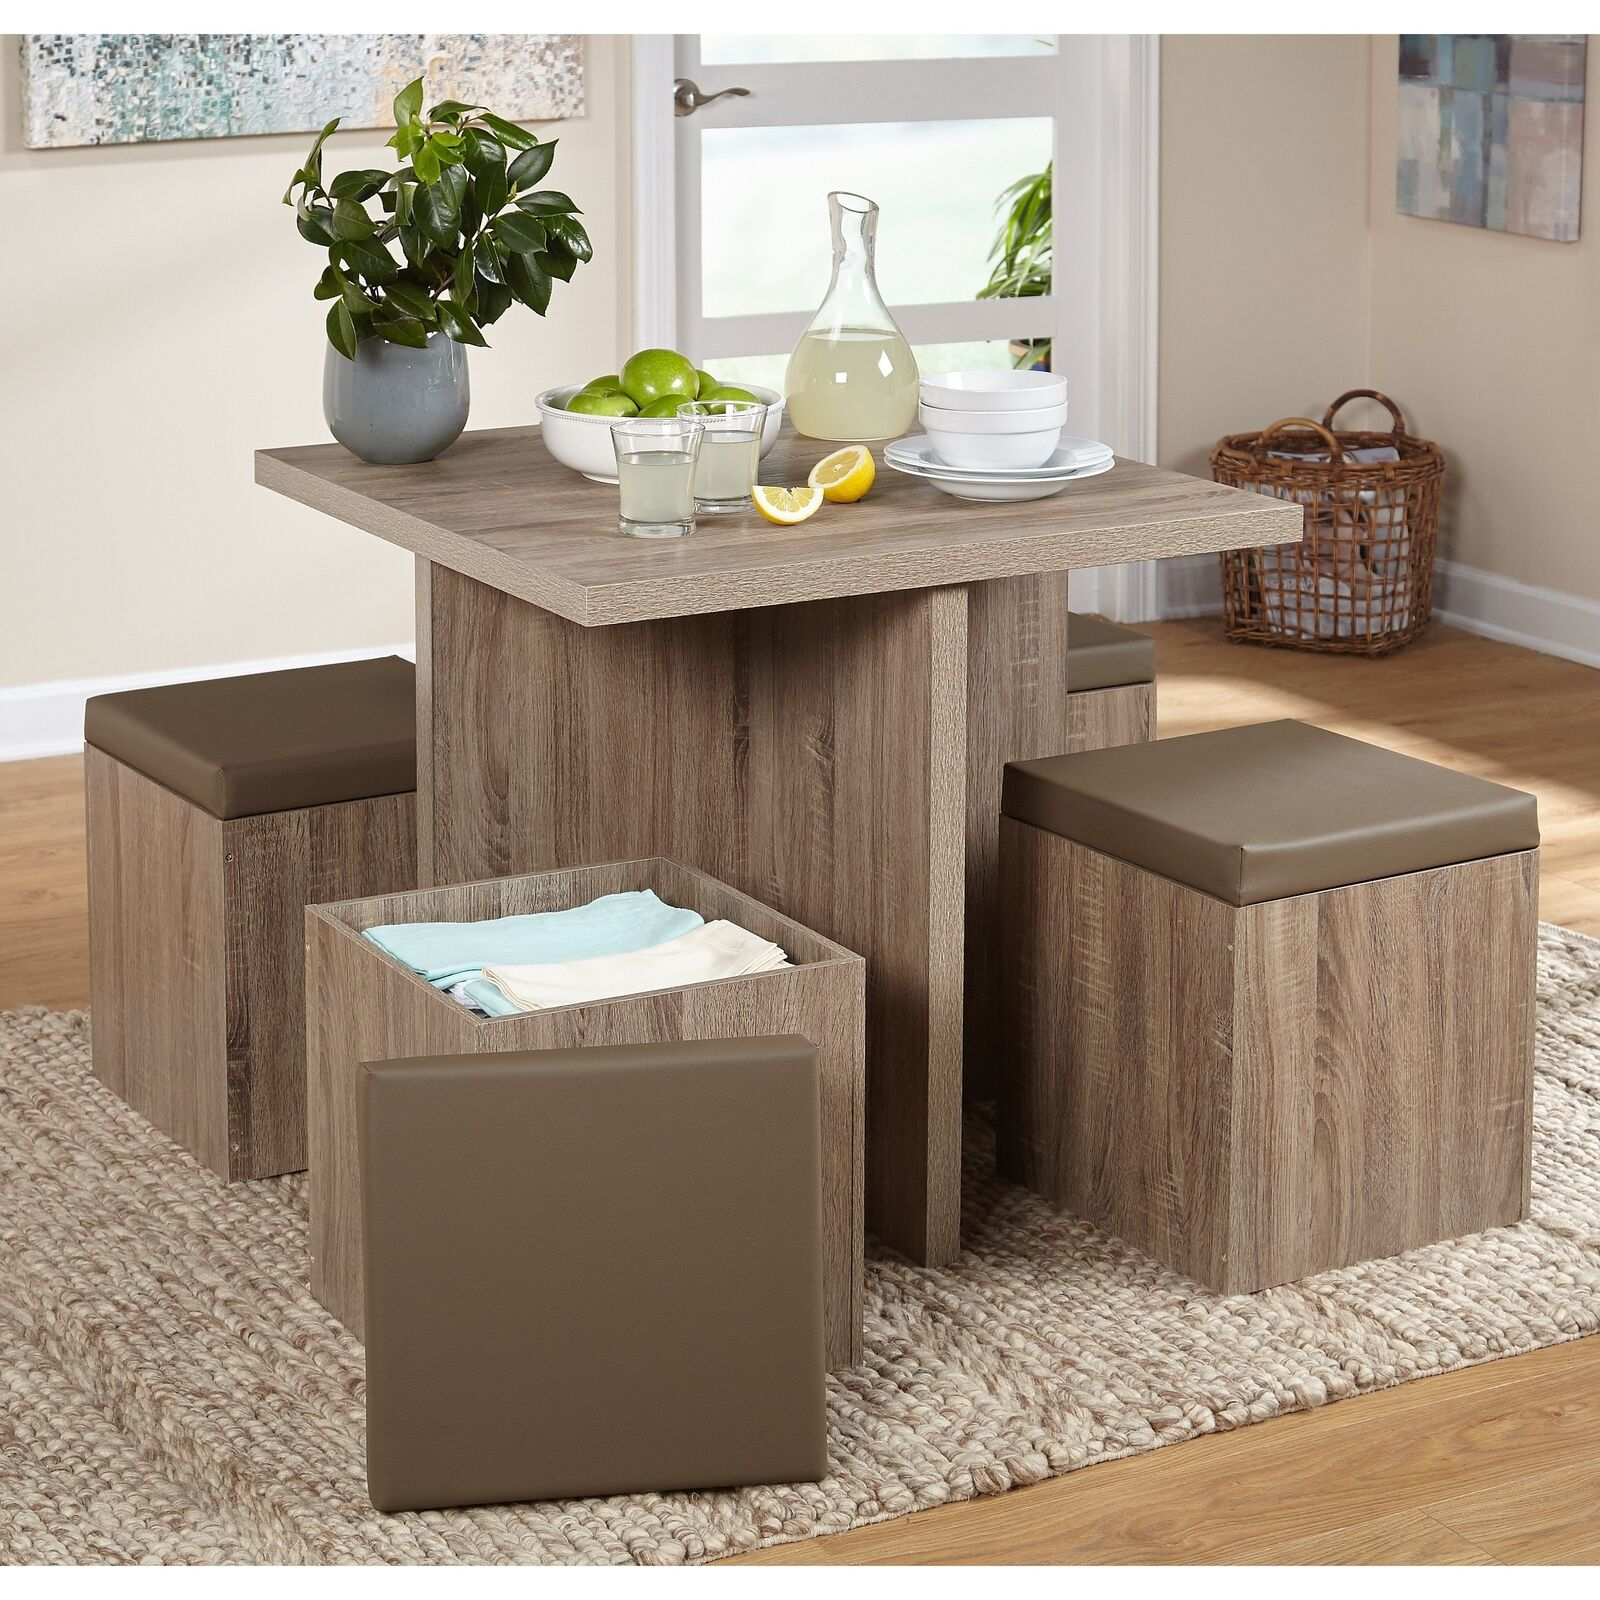 Details about Compact Dining Room Set 5 Piece Modern Space Saving Table  Storage Stools Taupe